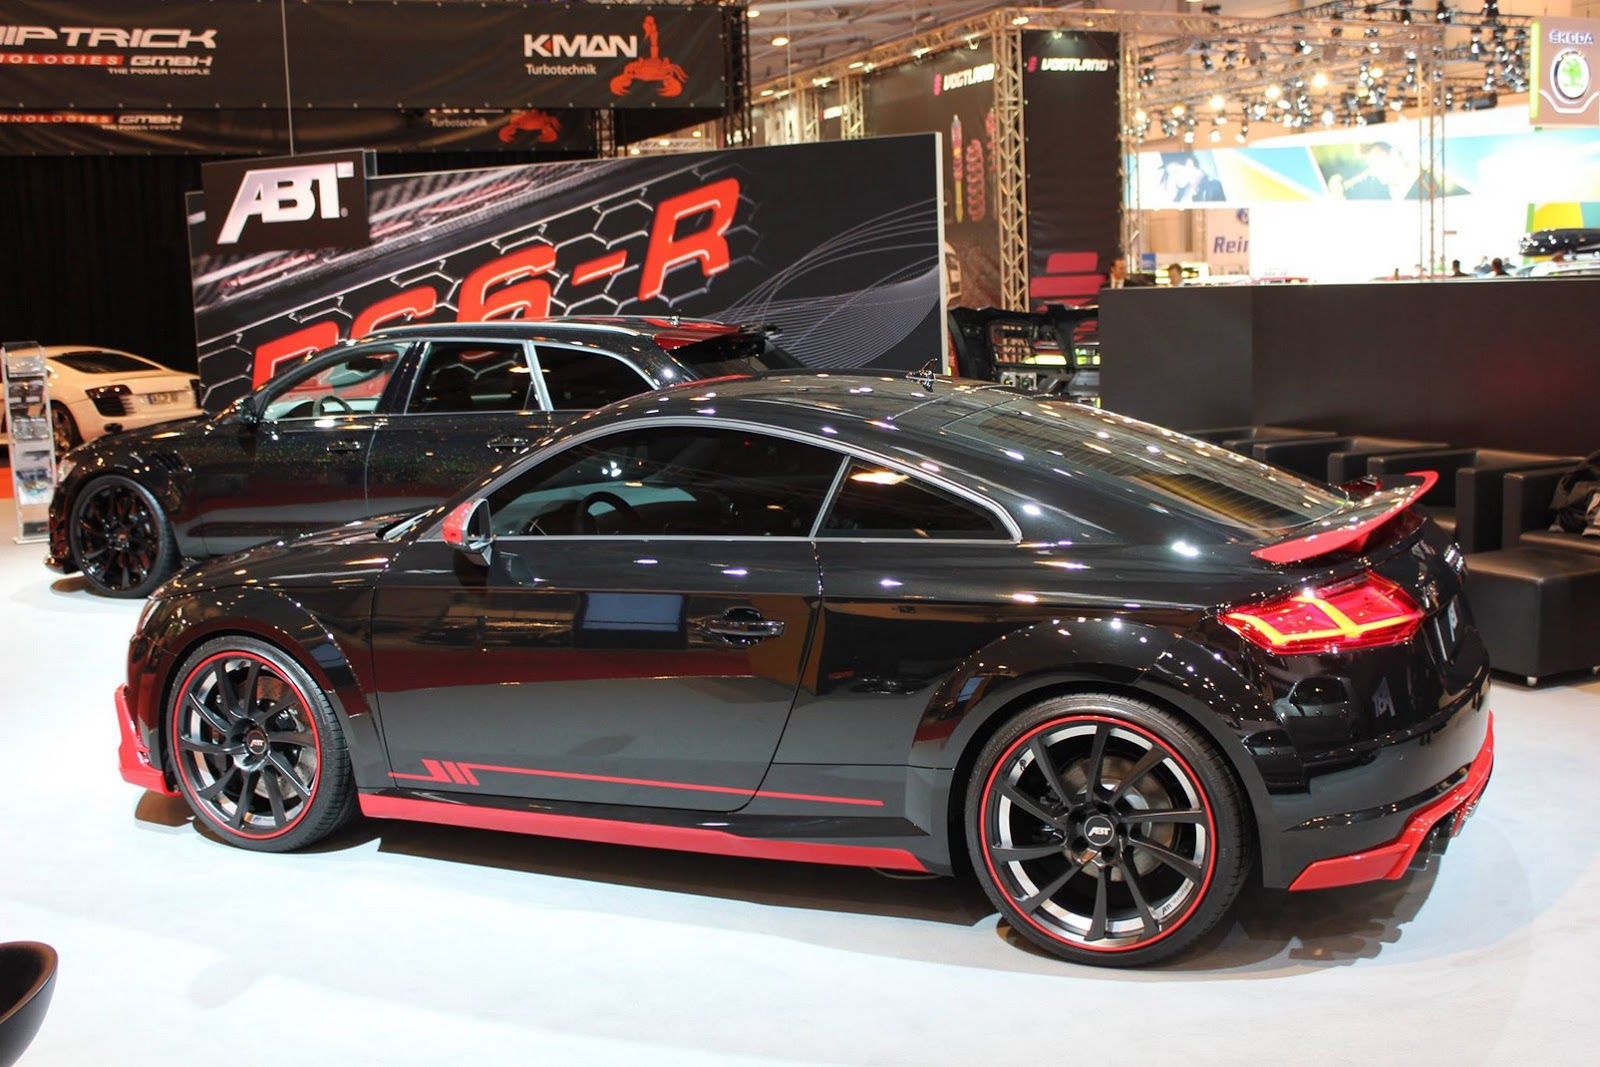 New Audi Tt Earns Its First Abt Tuning Stripes Carscoops